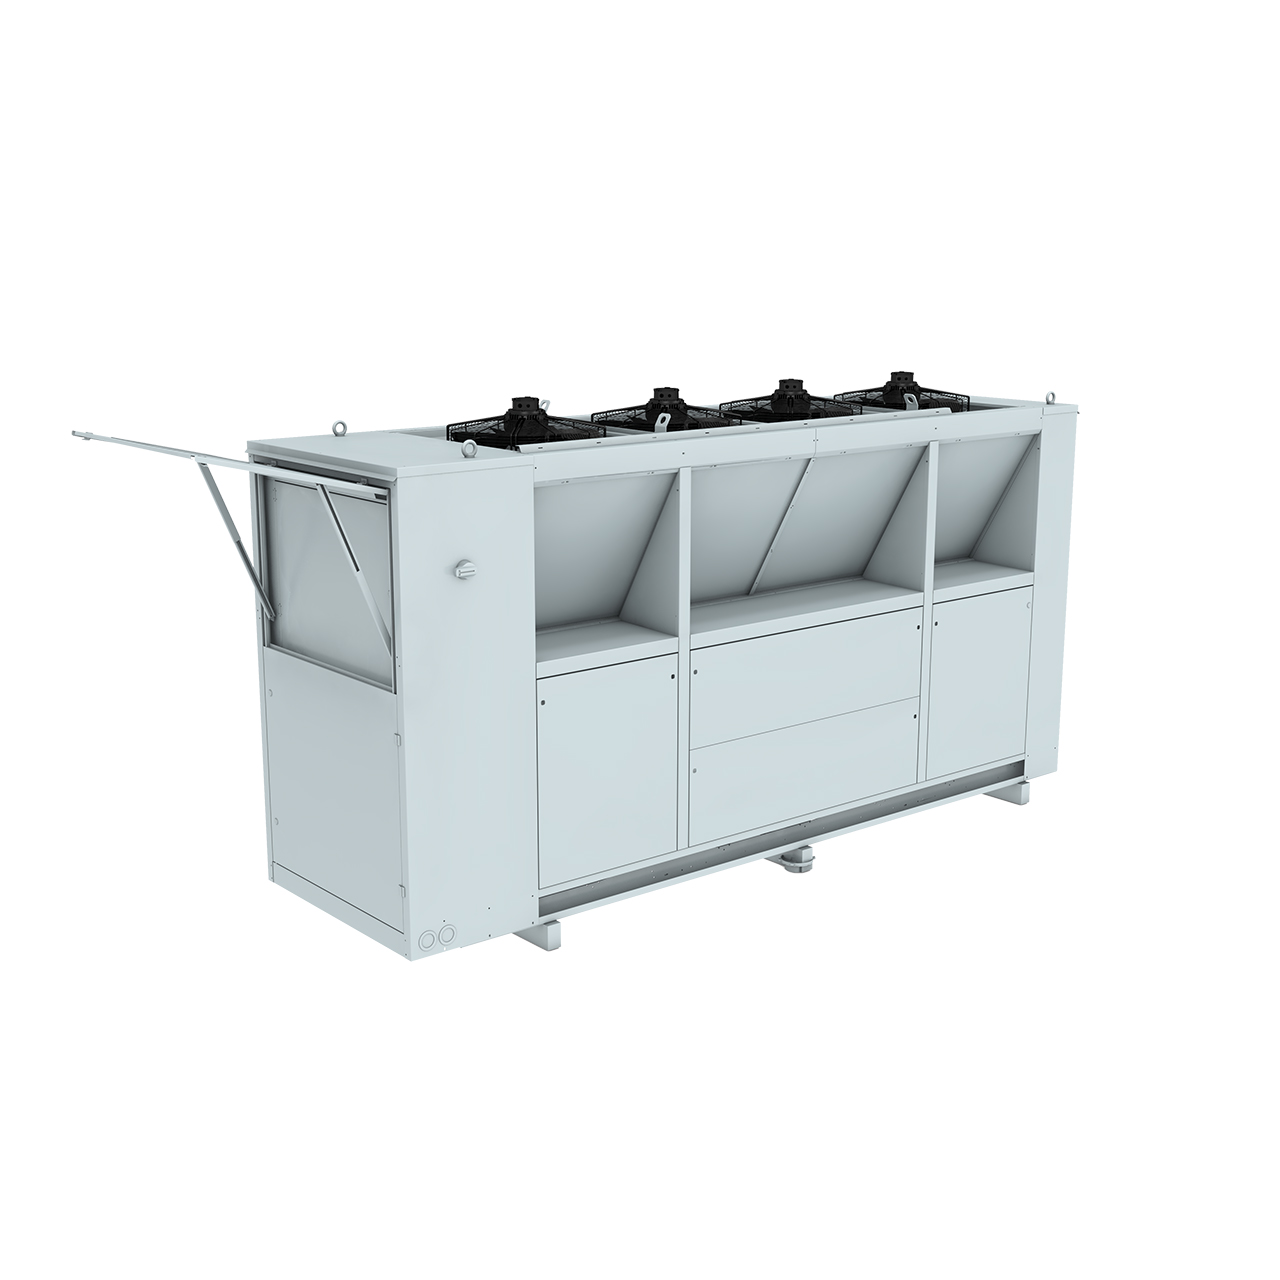 air-cooled-condensing-unit-gcv